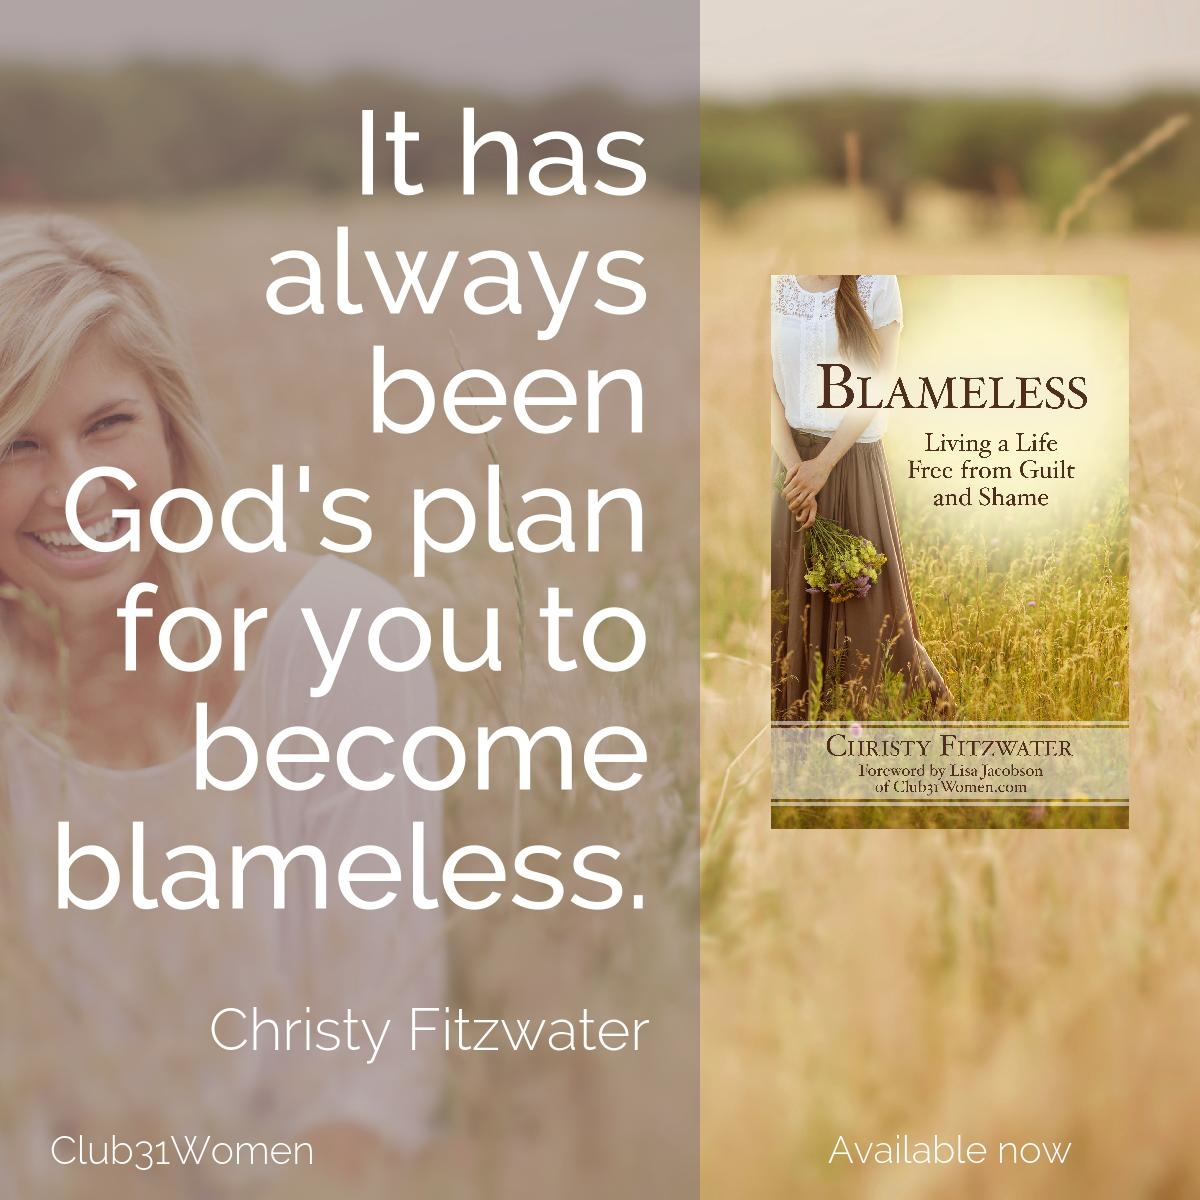 Blameless - Living A Life Free from Guilt and Shame by Christy Fitzwater